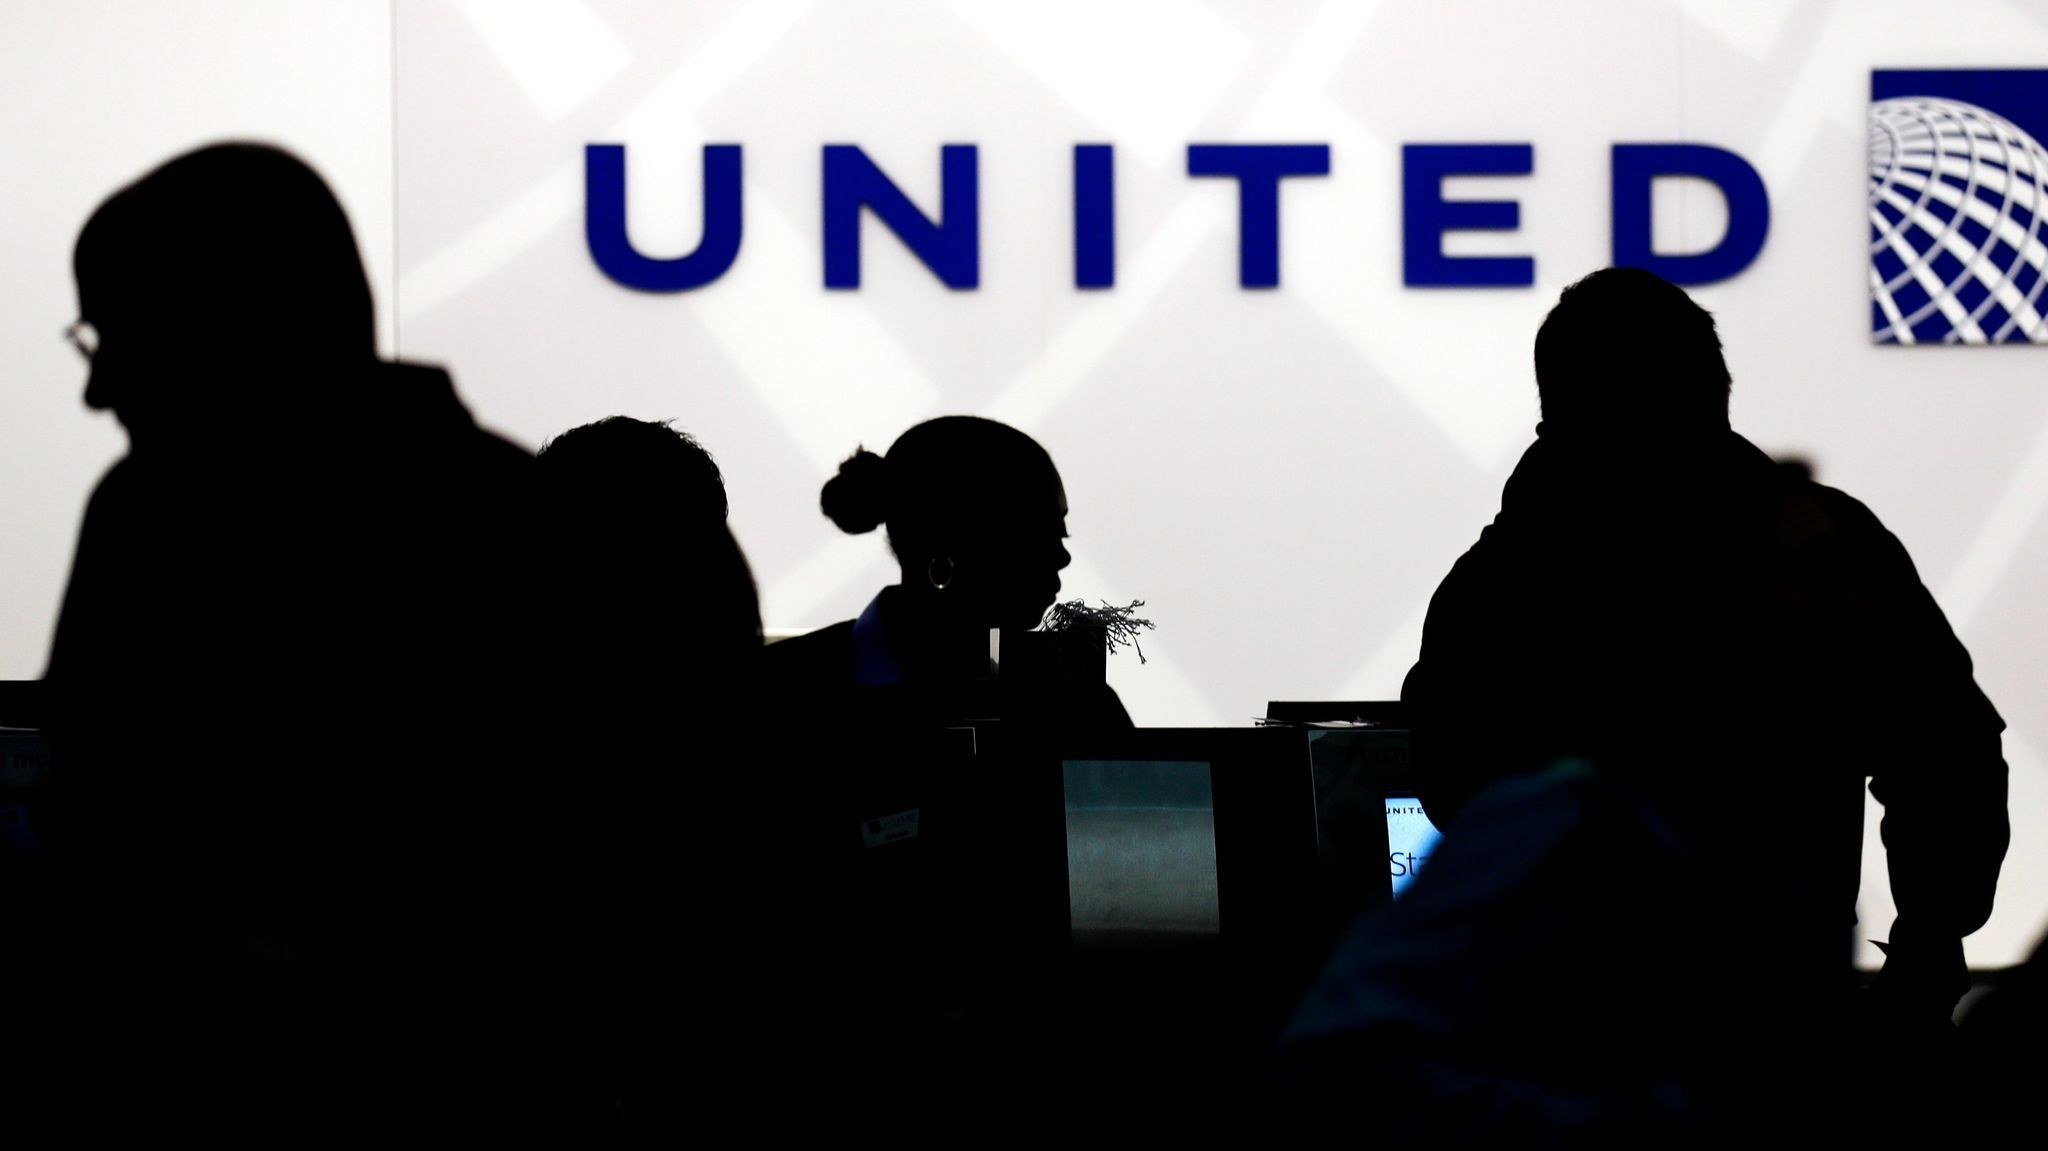 Travelers check in at the United Airlines ticket counter in O'Hare International Airport in Chicago. The carrier is reviewing its policy for overbooking.